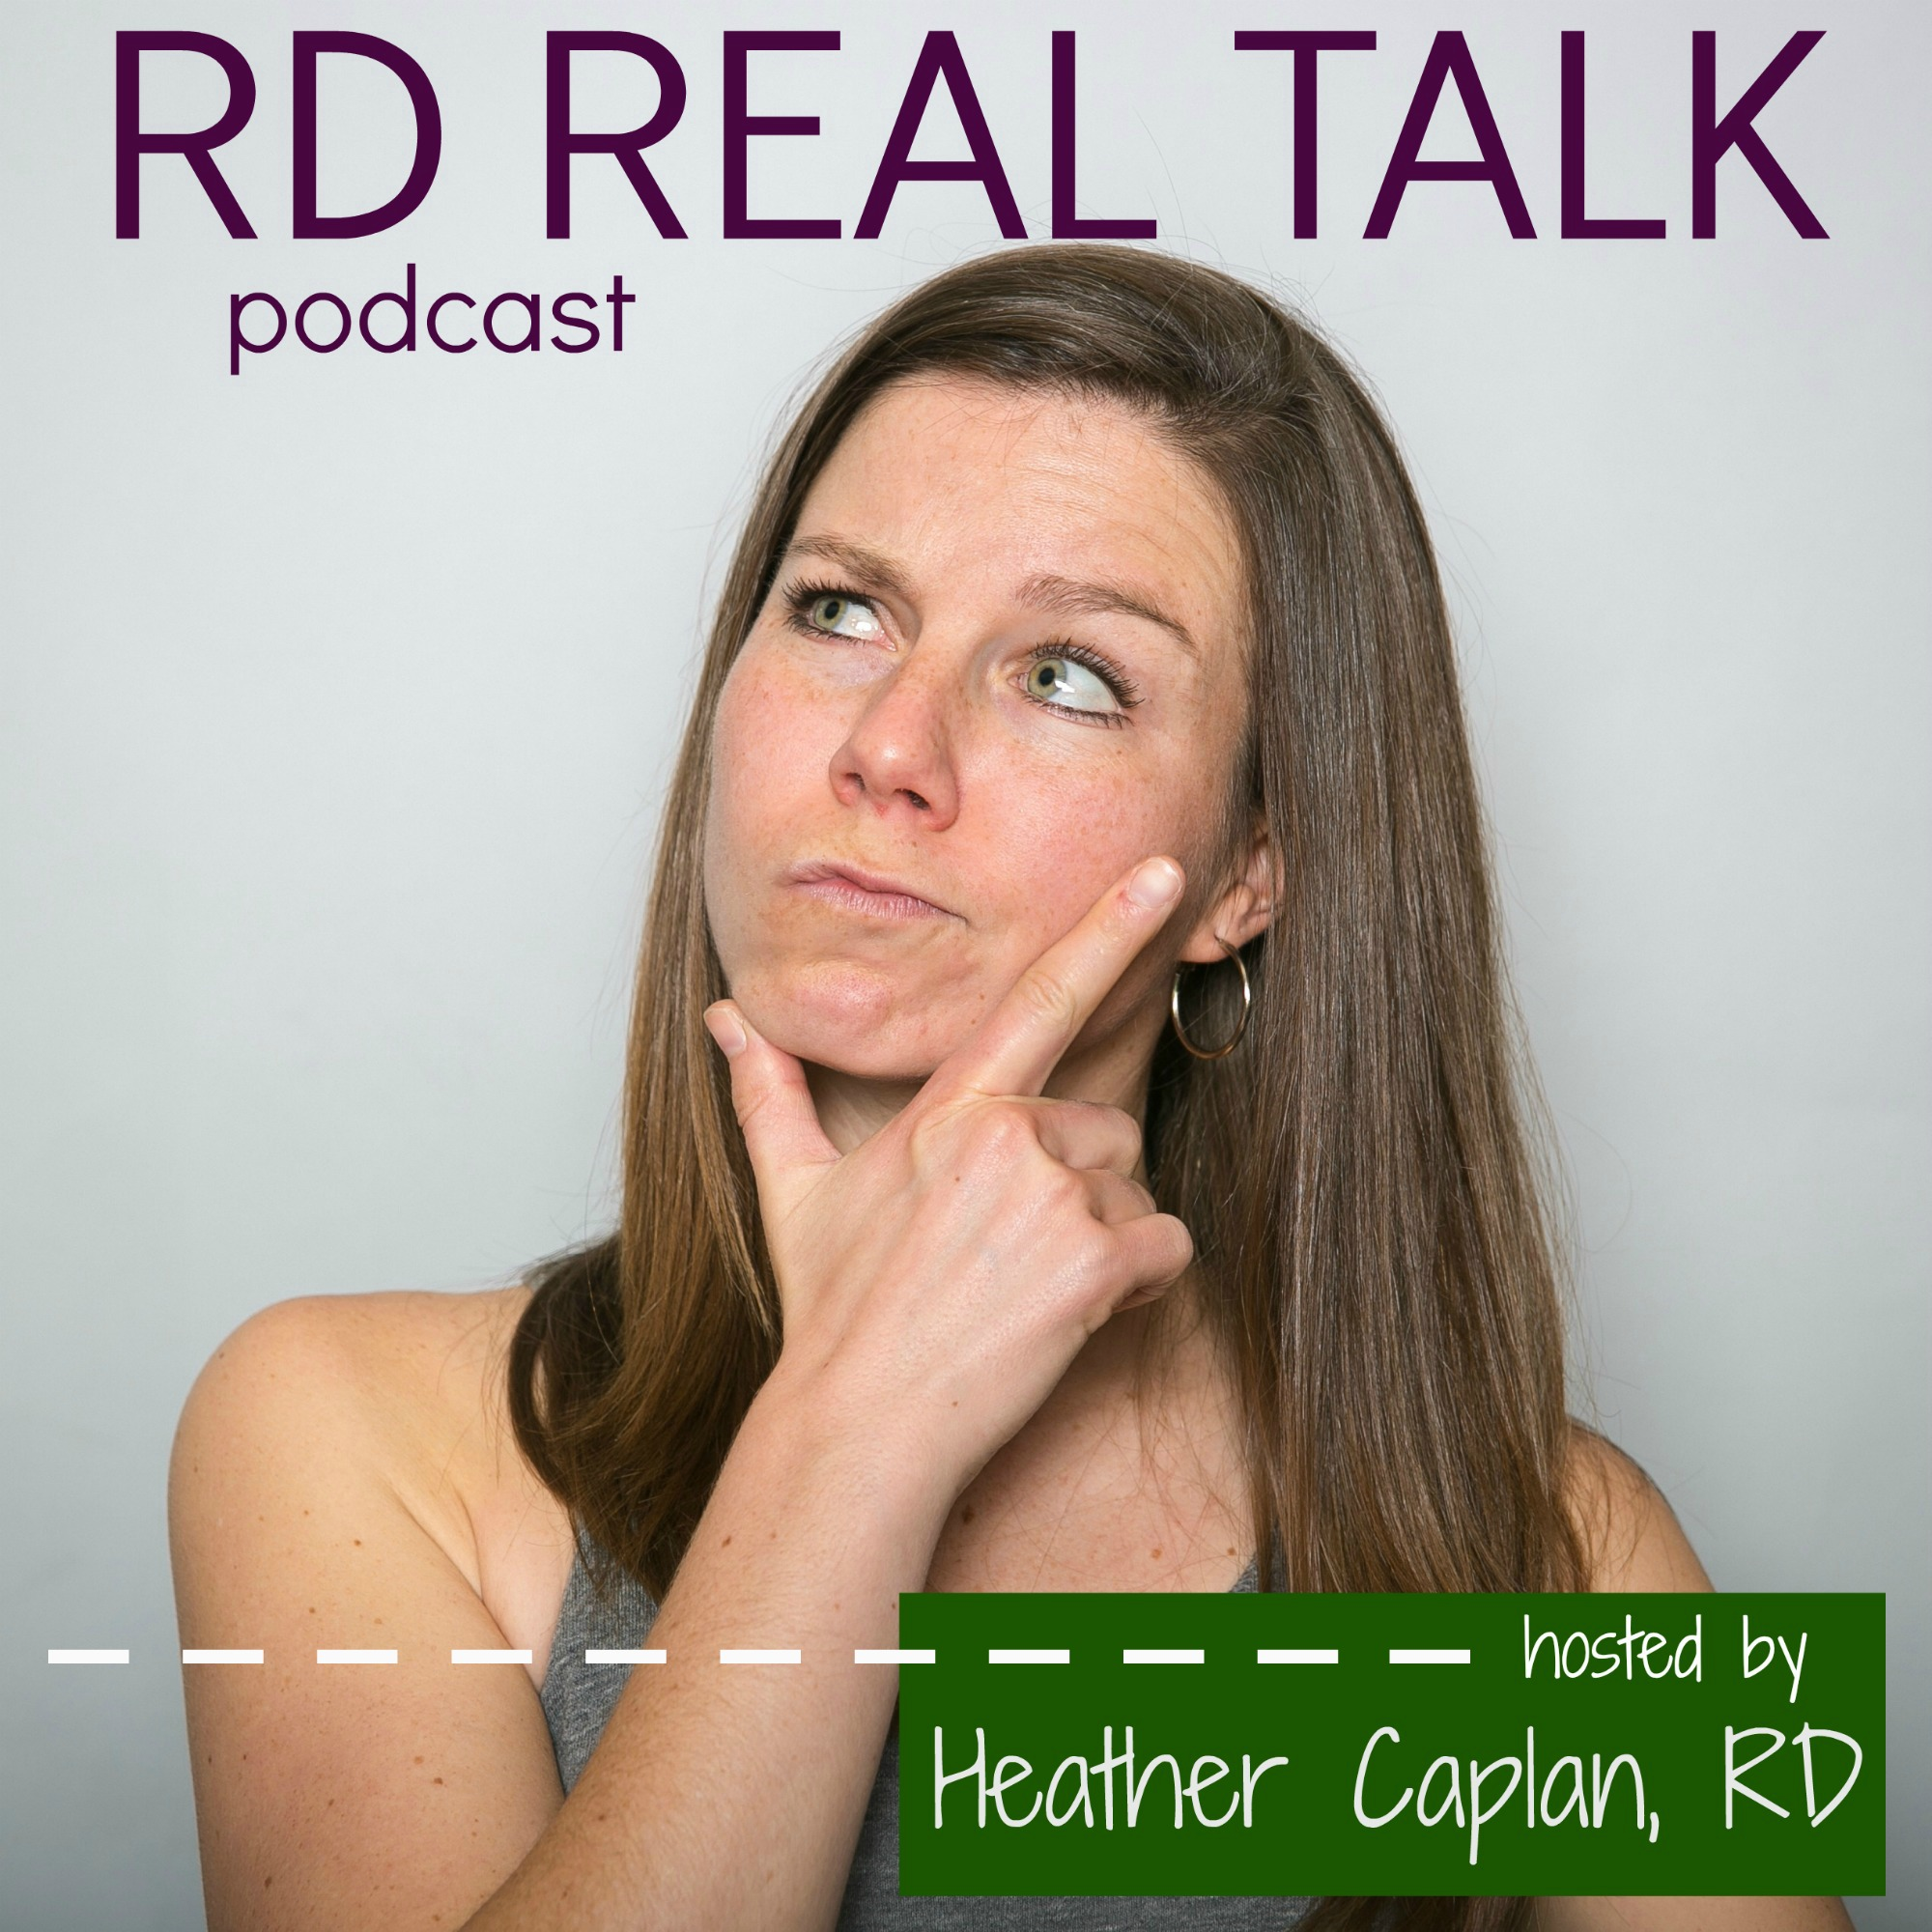 rd real talk podcast